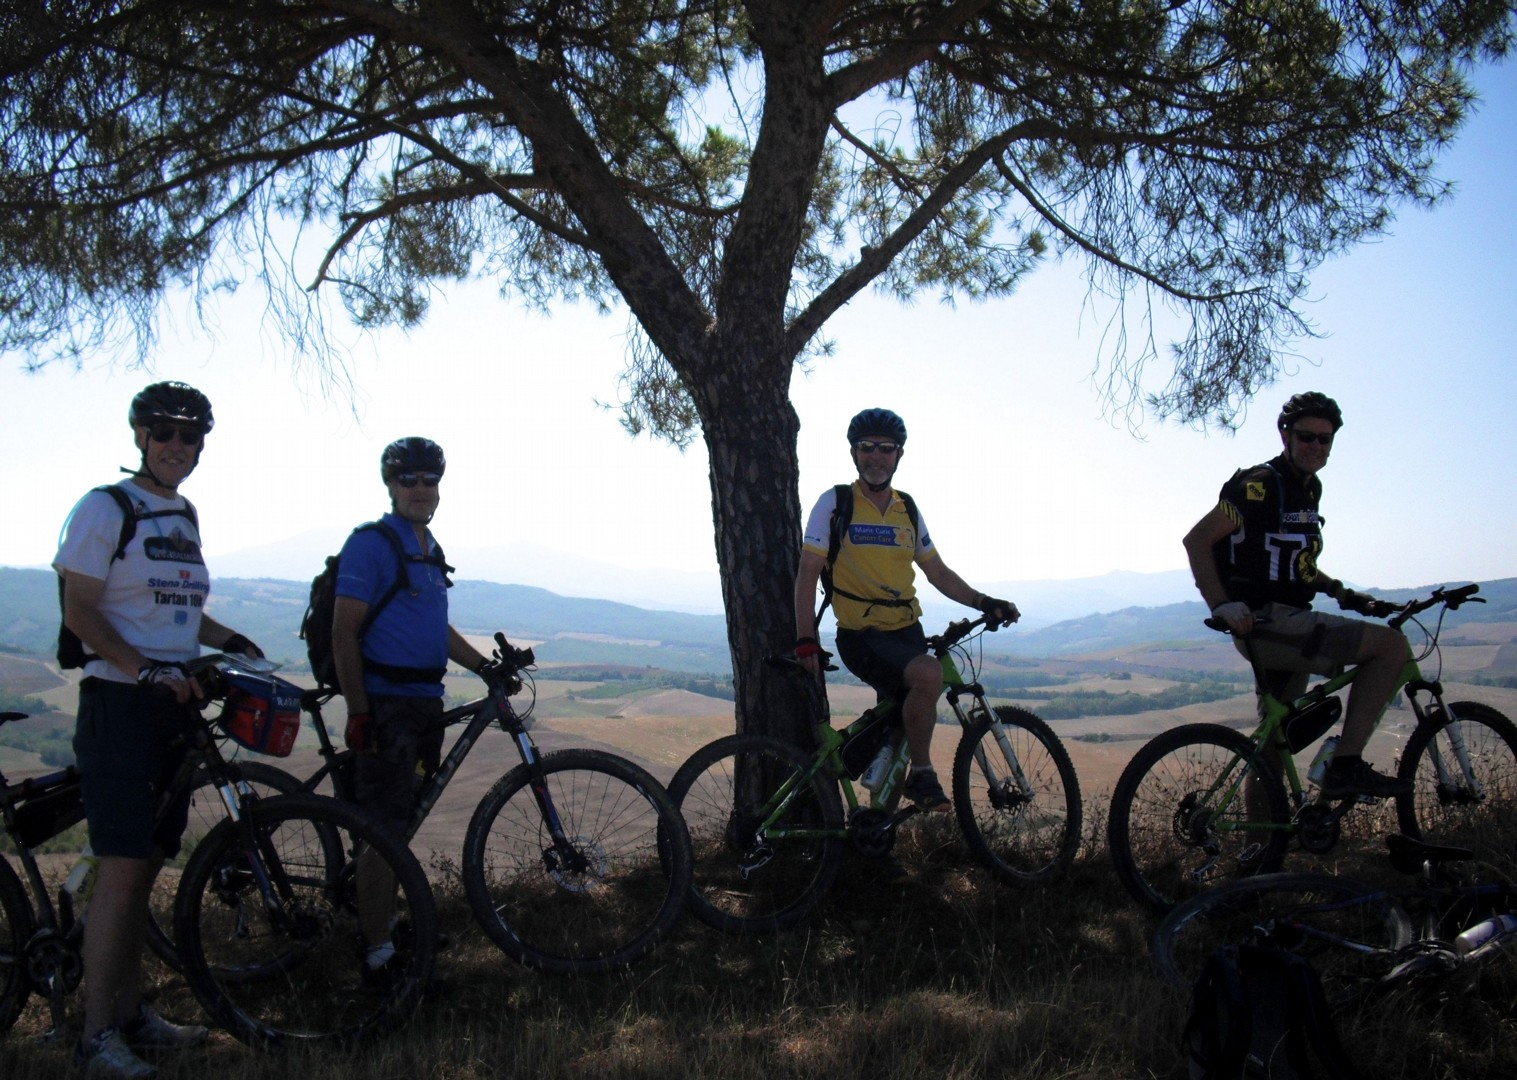 mountain-biking-holiday-tuscany-nature.jpg - Italy - Tuscany - Sacred Routes - Guided Mountain Bike Holiday - Mountain Biking